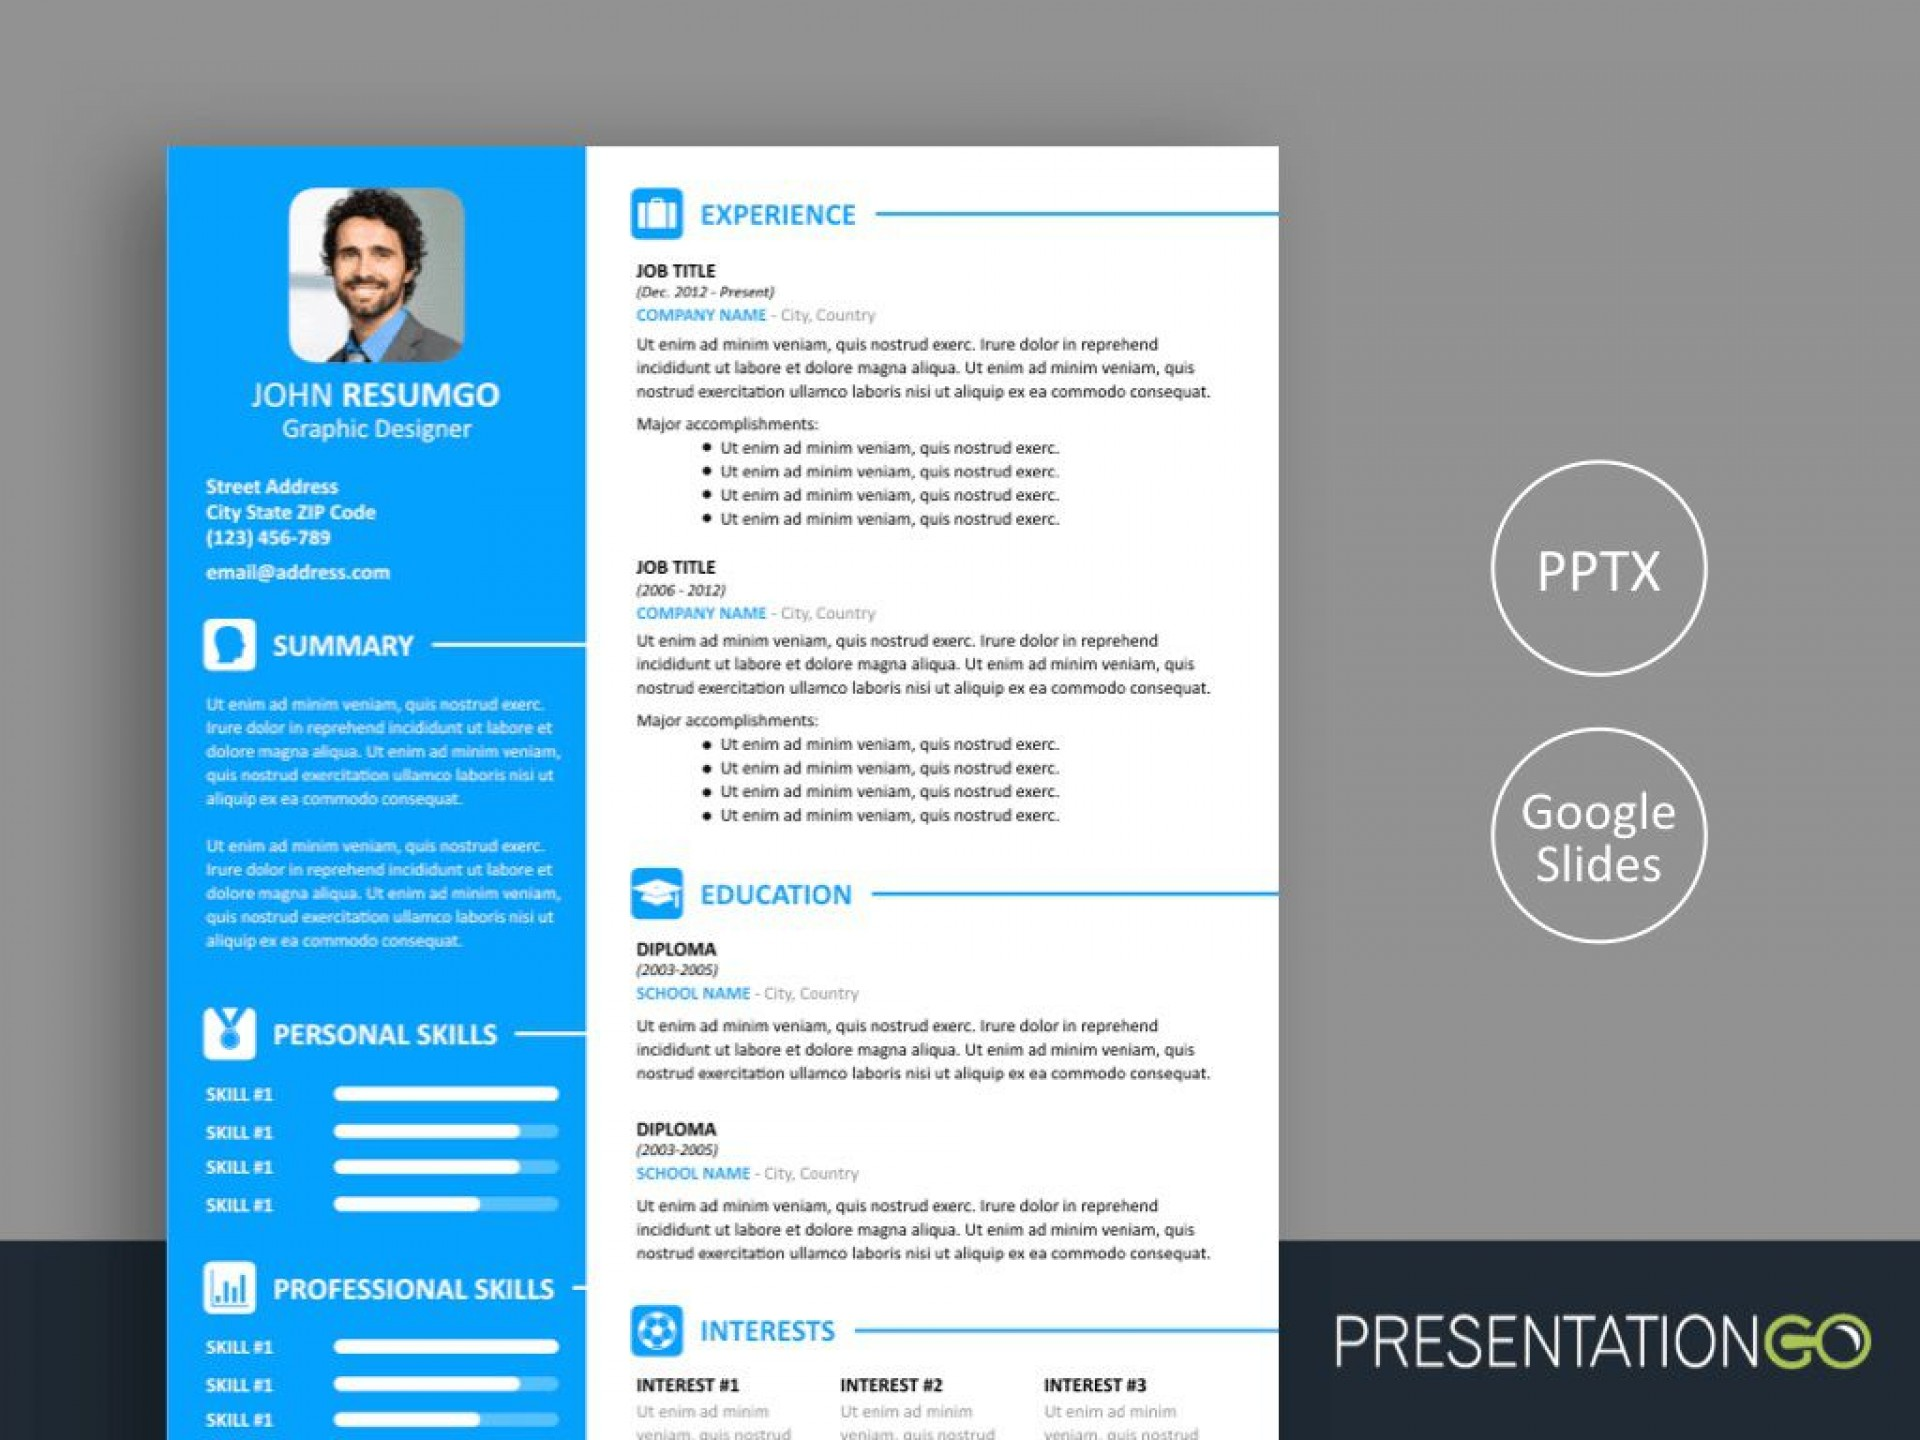 009 Staggering Google Doc Powerpoint Template Example  Templates Presentation1920